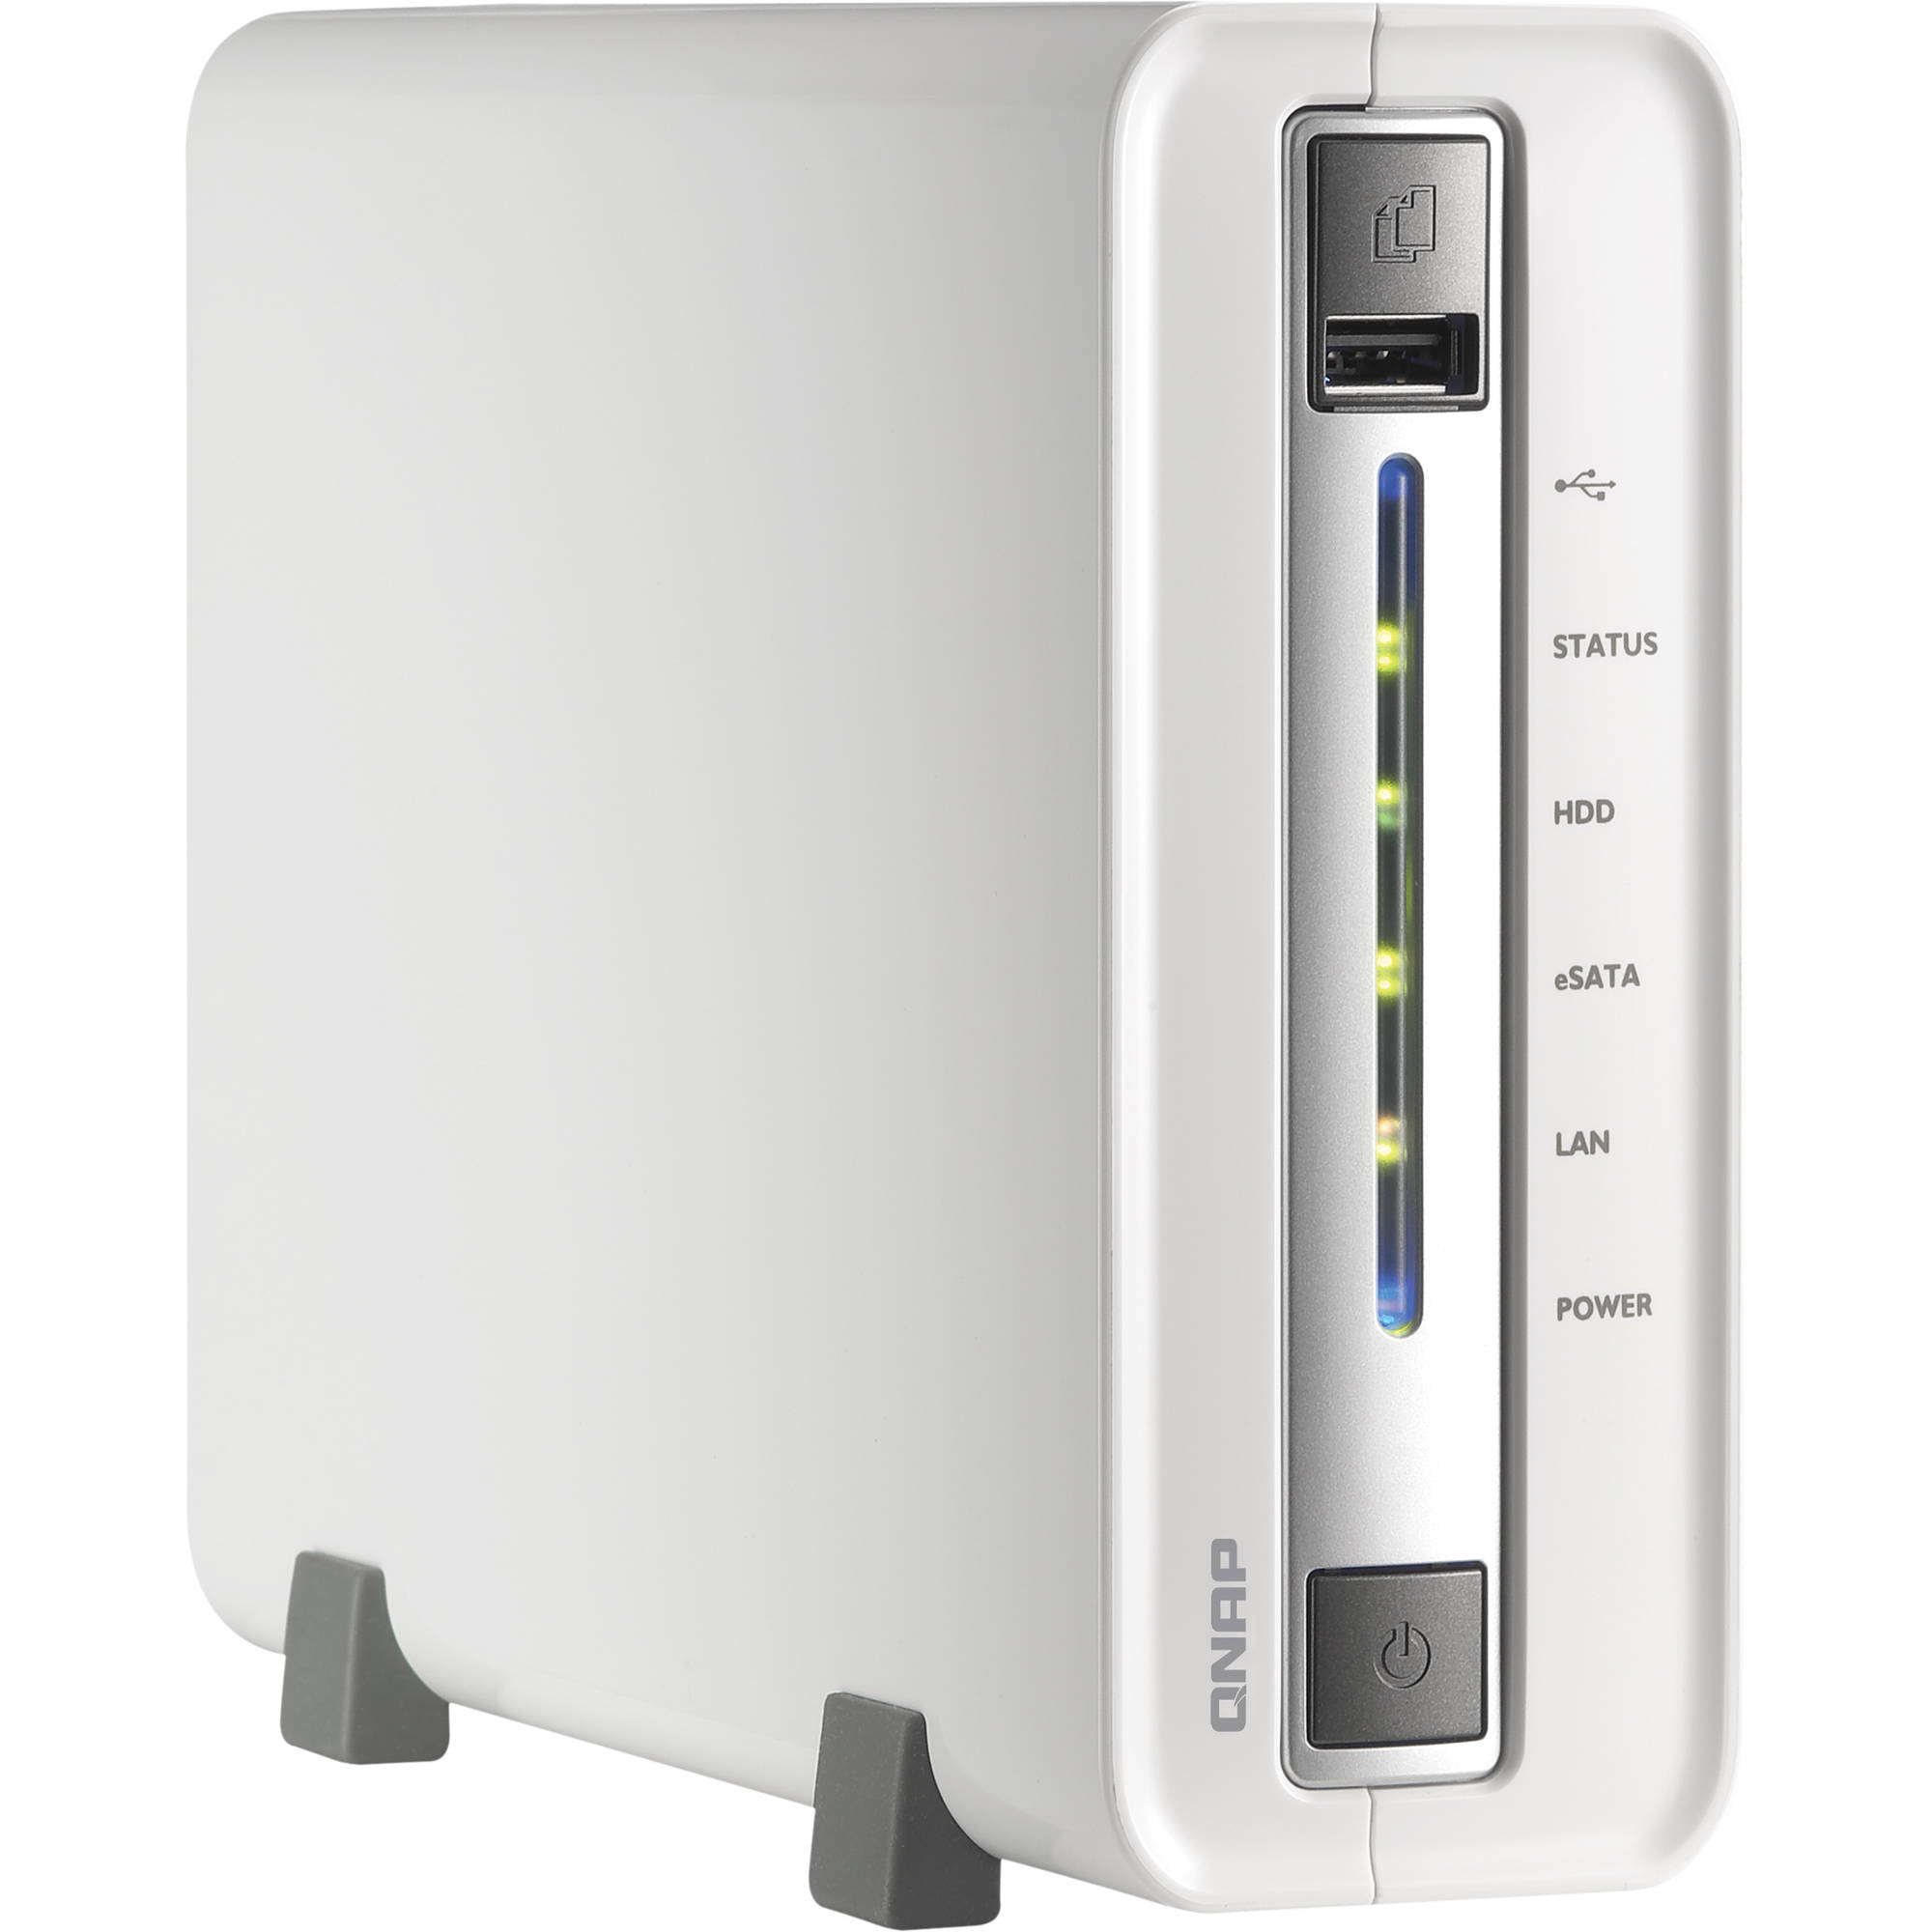 QNAP TS-112P 1-Bay Home and SOHO NAS for Personal Cloud